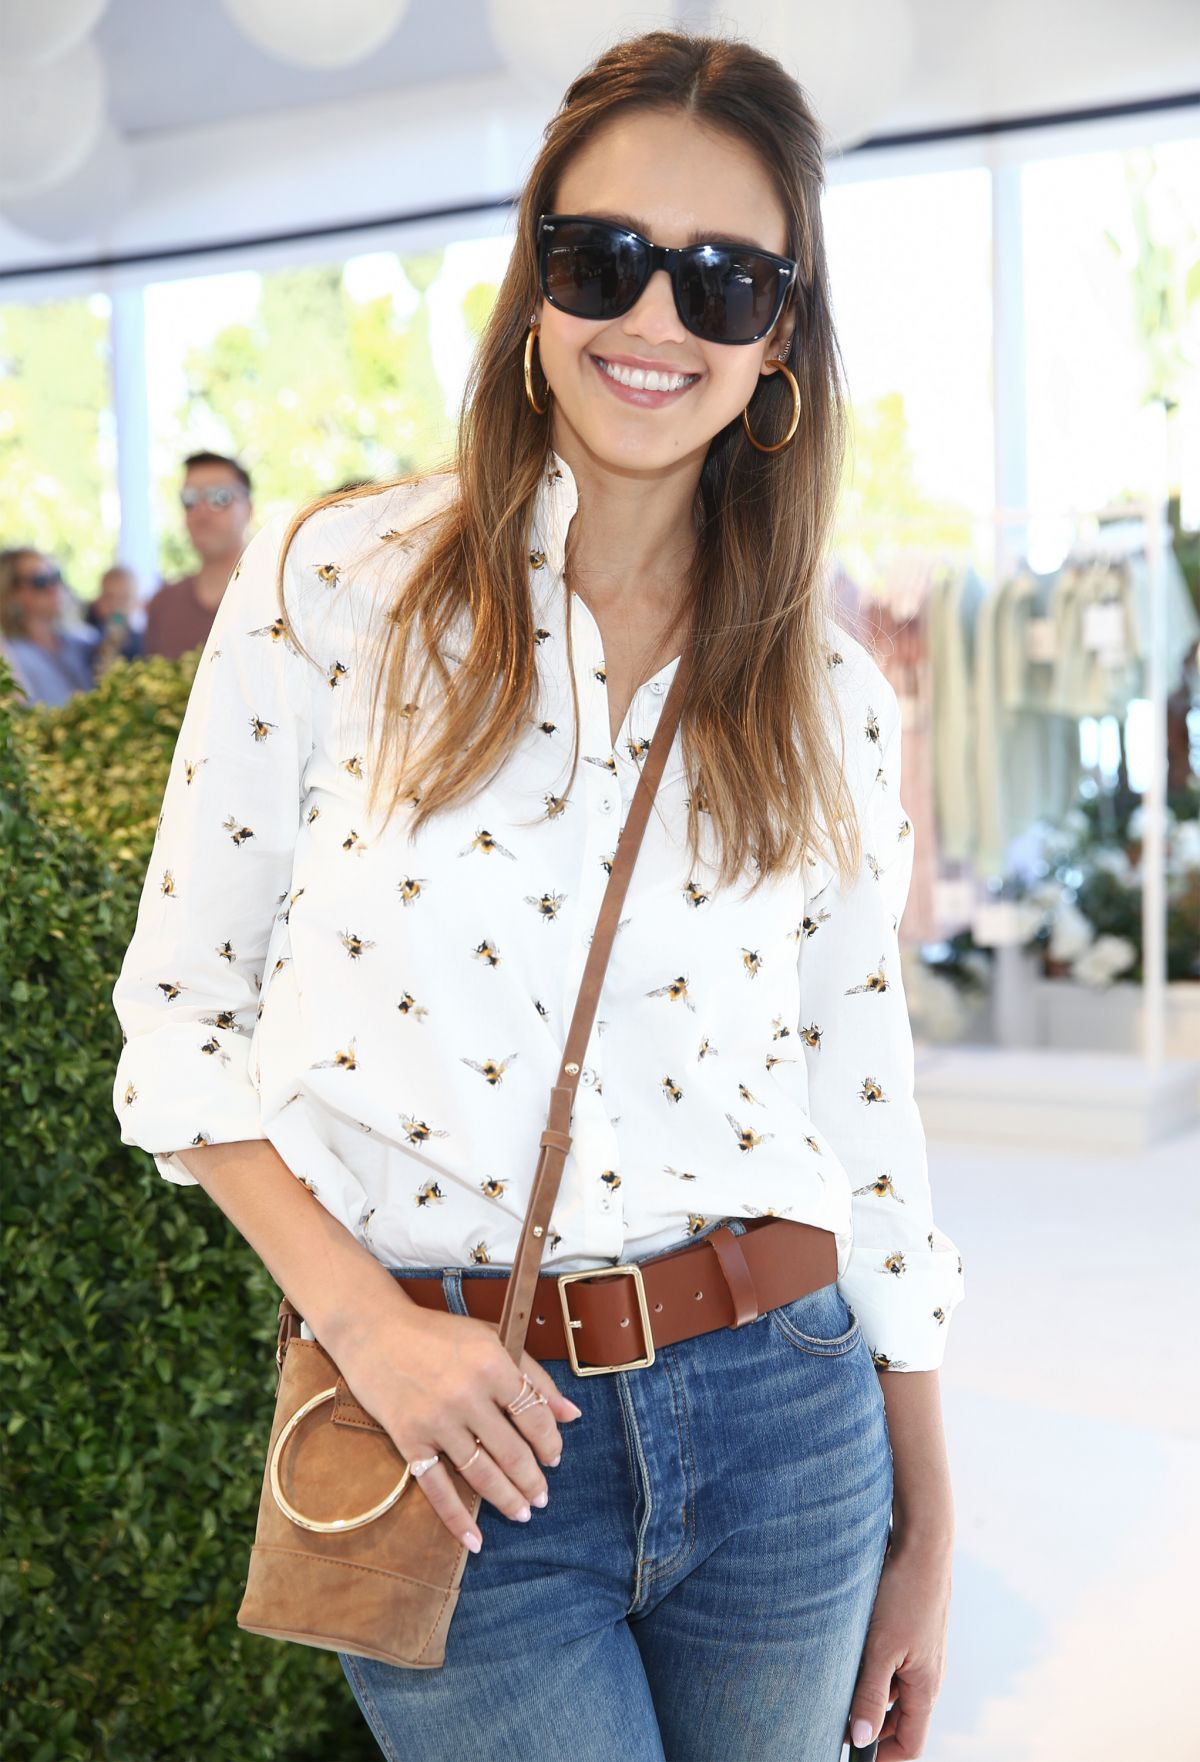 http://www.hawtcelebs.com/wp-content/uploads/2017/04/jessica-alba-at-victoria-beckham-for-target-garden-party-in-los-angeles-04-01-2017_3.jpg